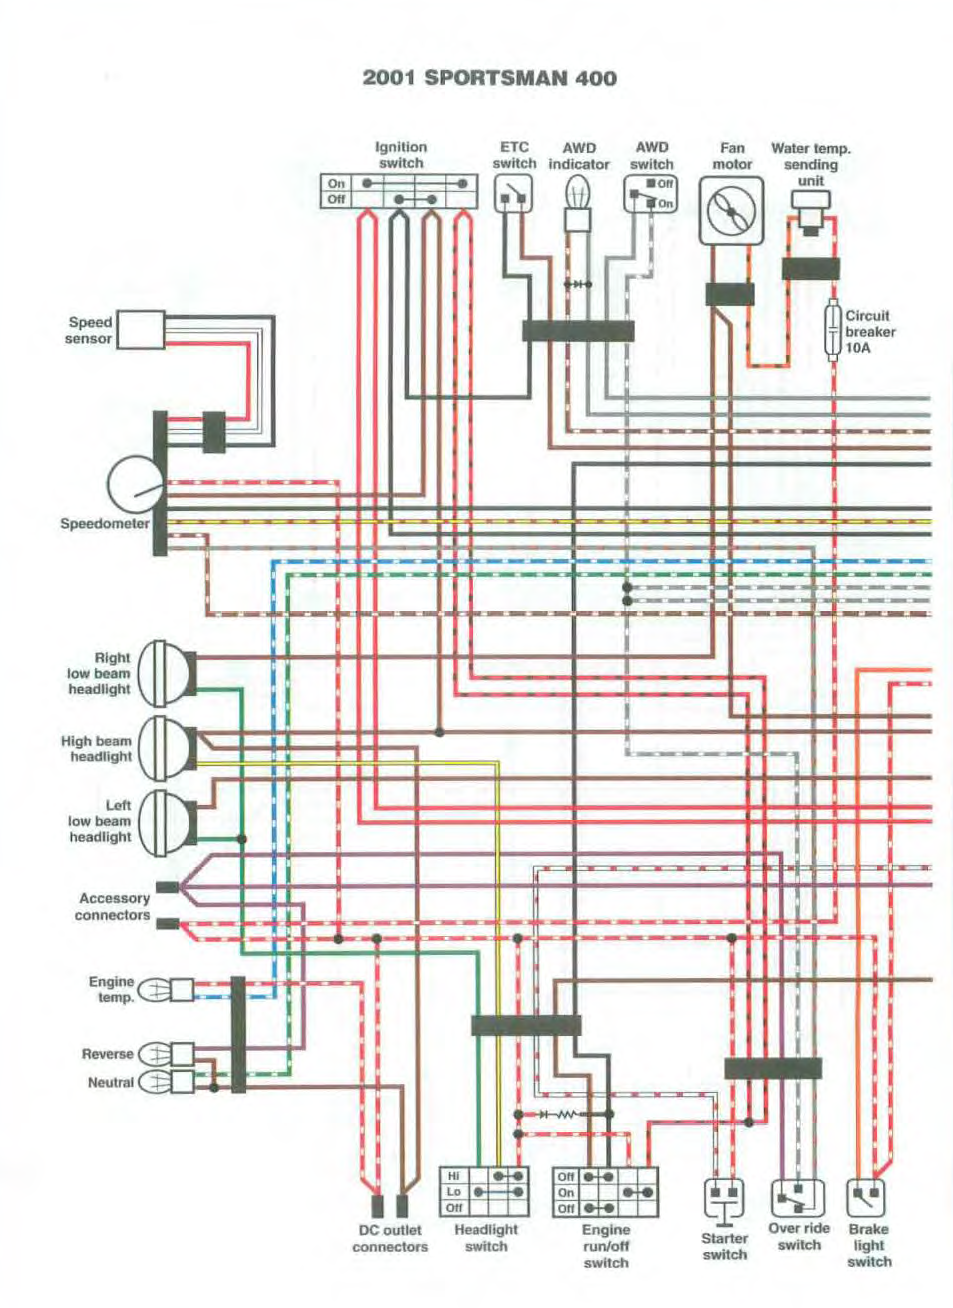 Wiring Diagram Dodge Xplorer from www.polarisatvforums.com